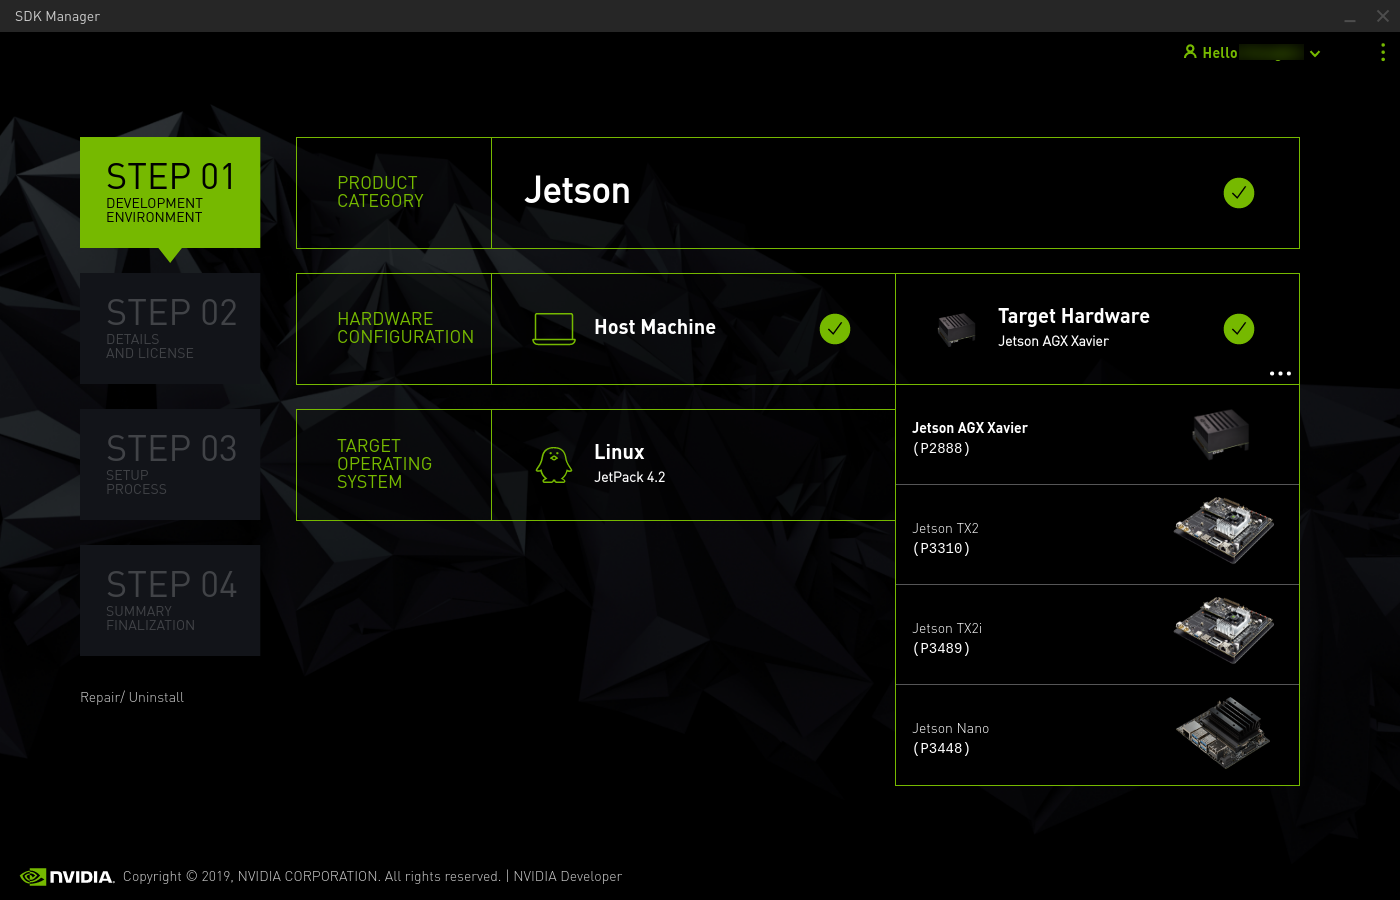 Install Jetson Software with SDK Manager :: NVIDIA SDK